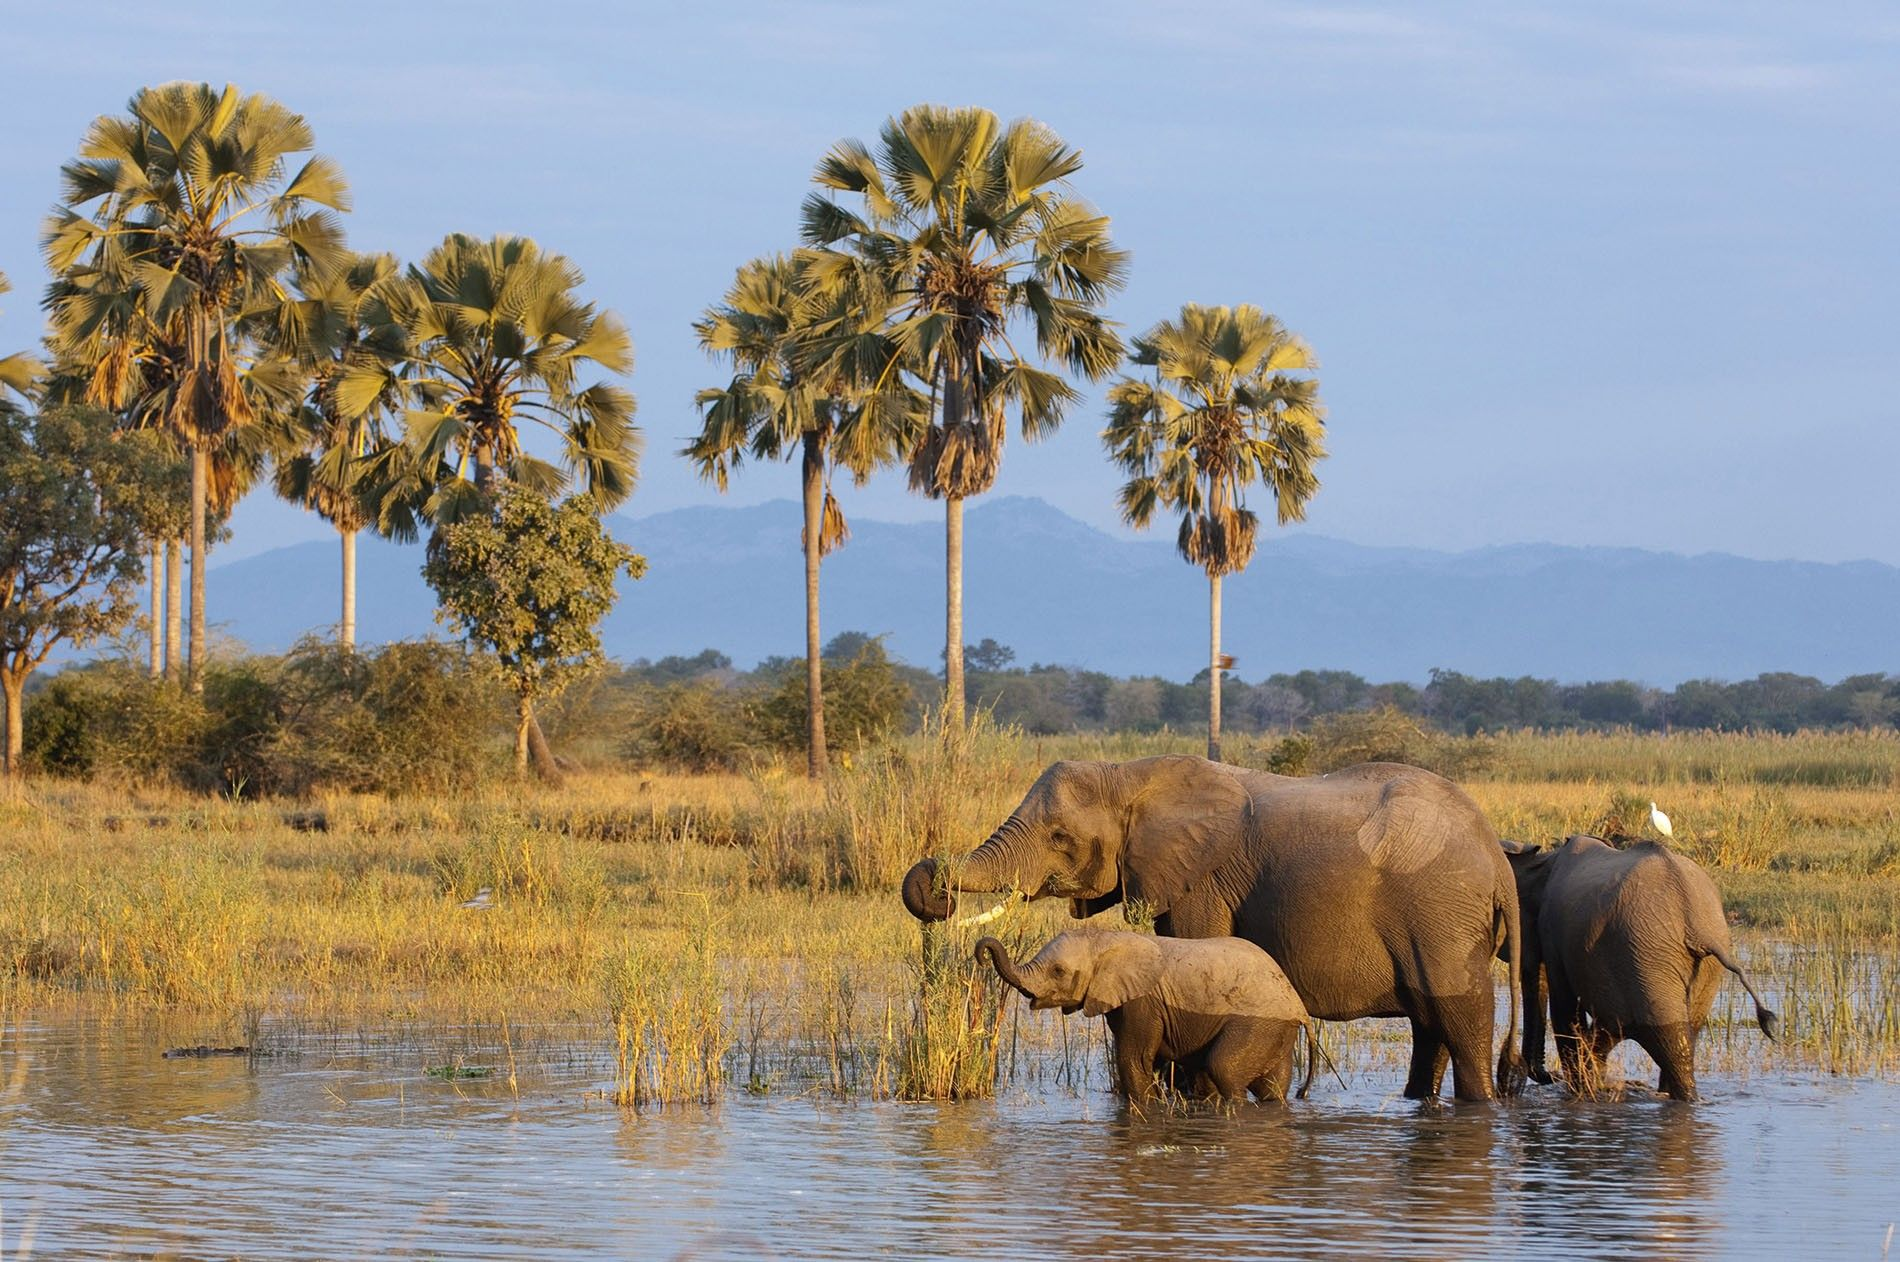 Elephants in the Shire River, Liwonde National Park.